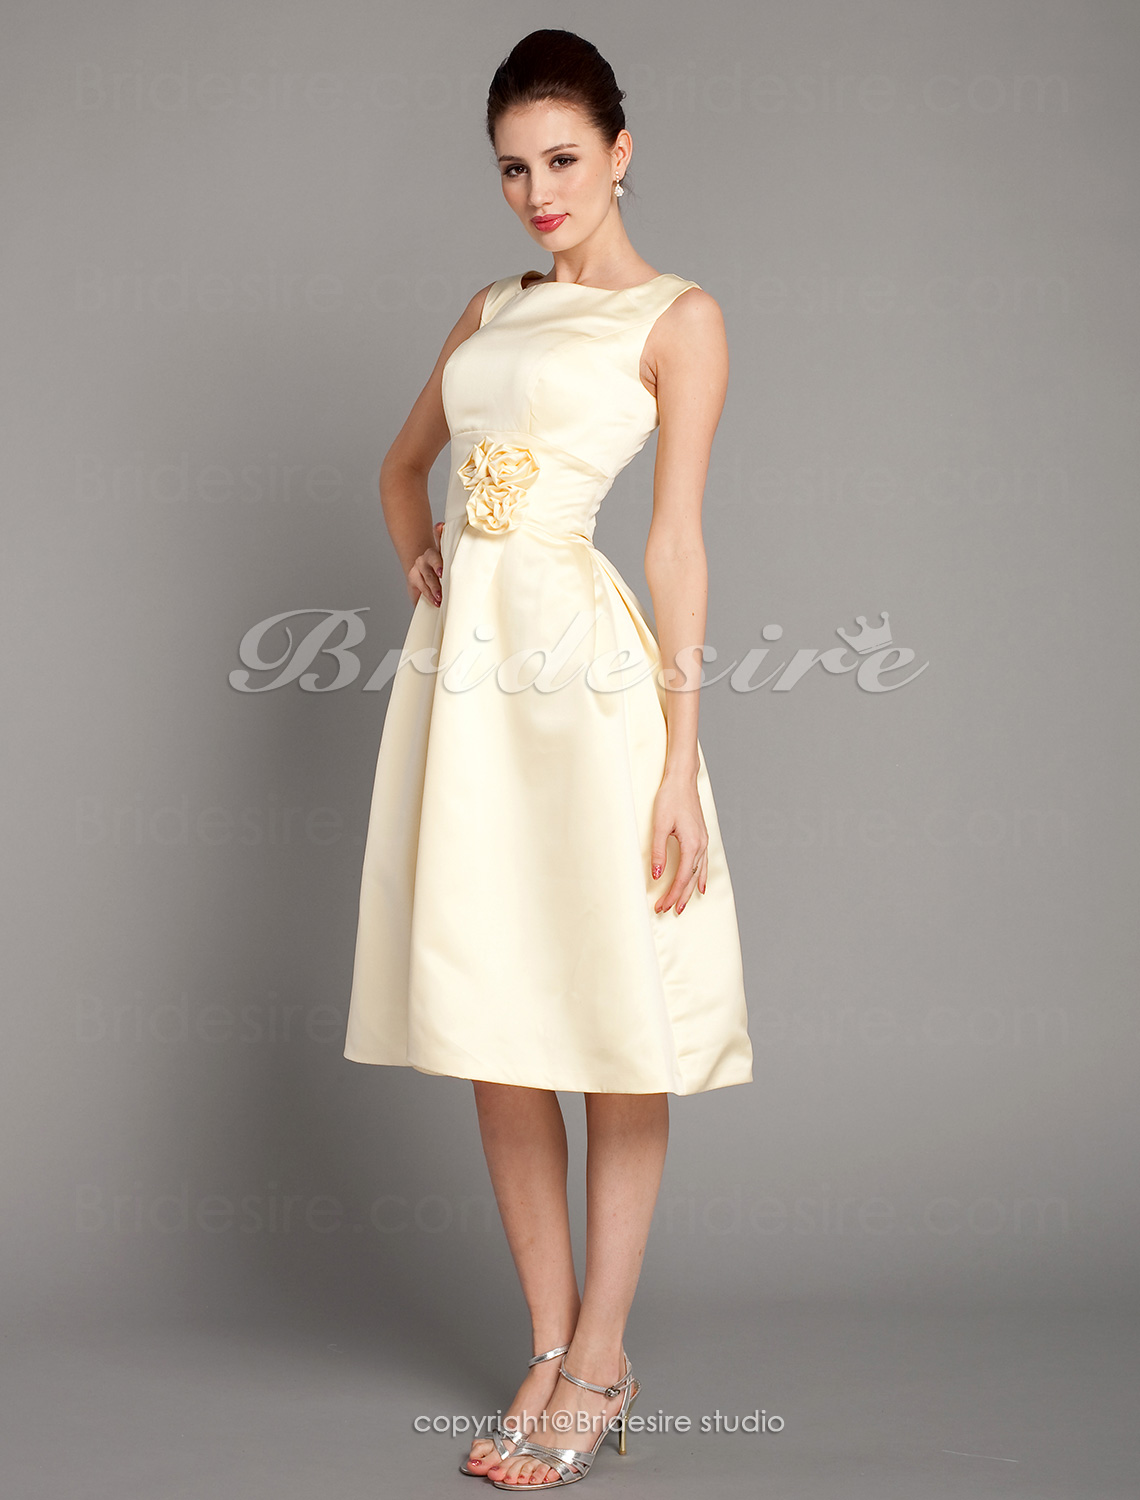 A-Lijn Knielengte Satijn Vierkant Bridesmaid/ Wedding Party Kleding